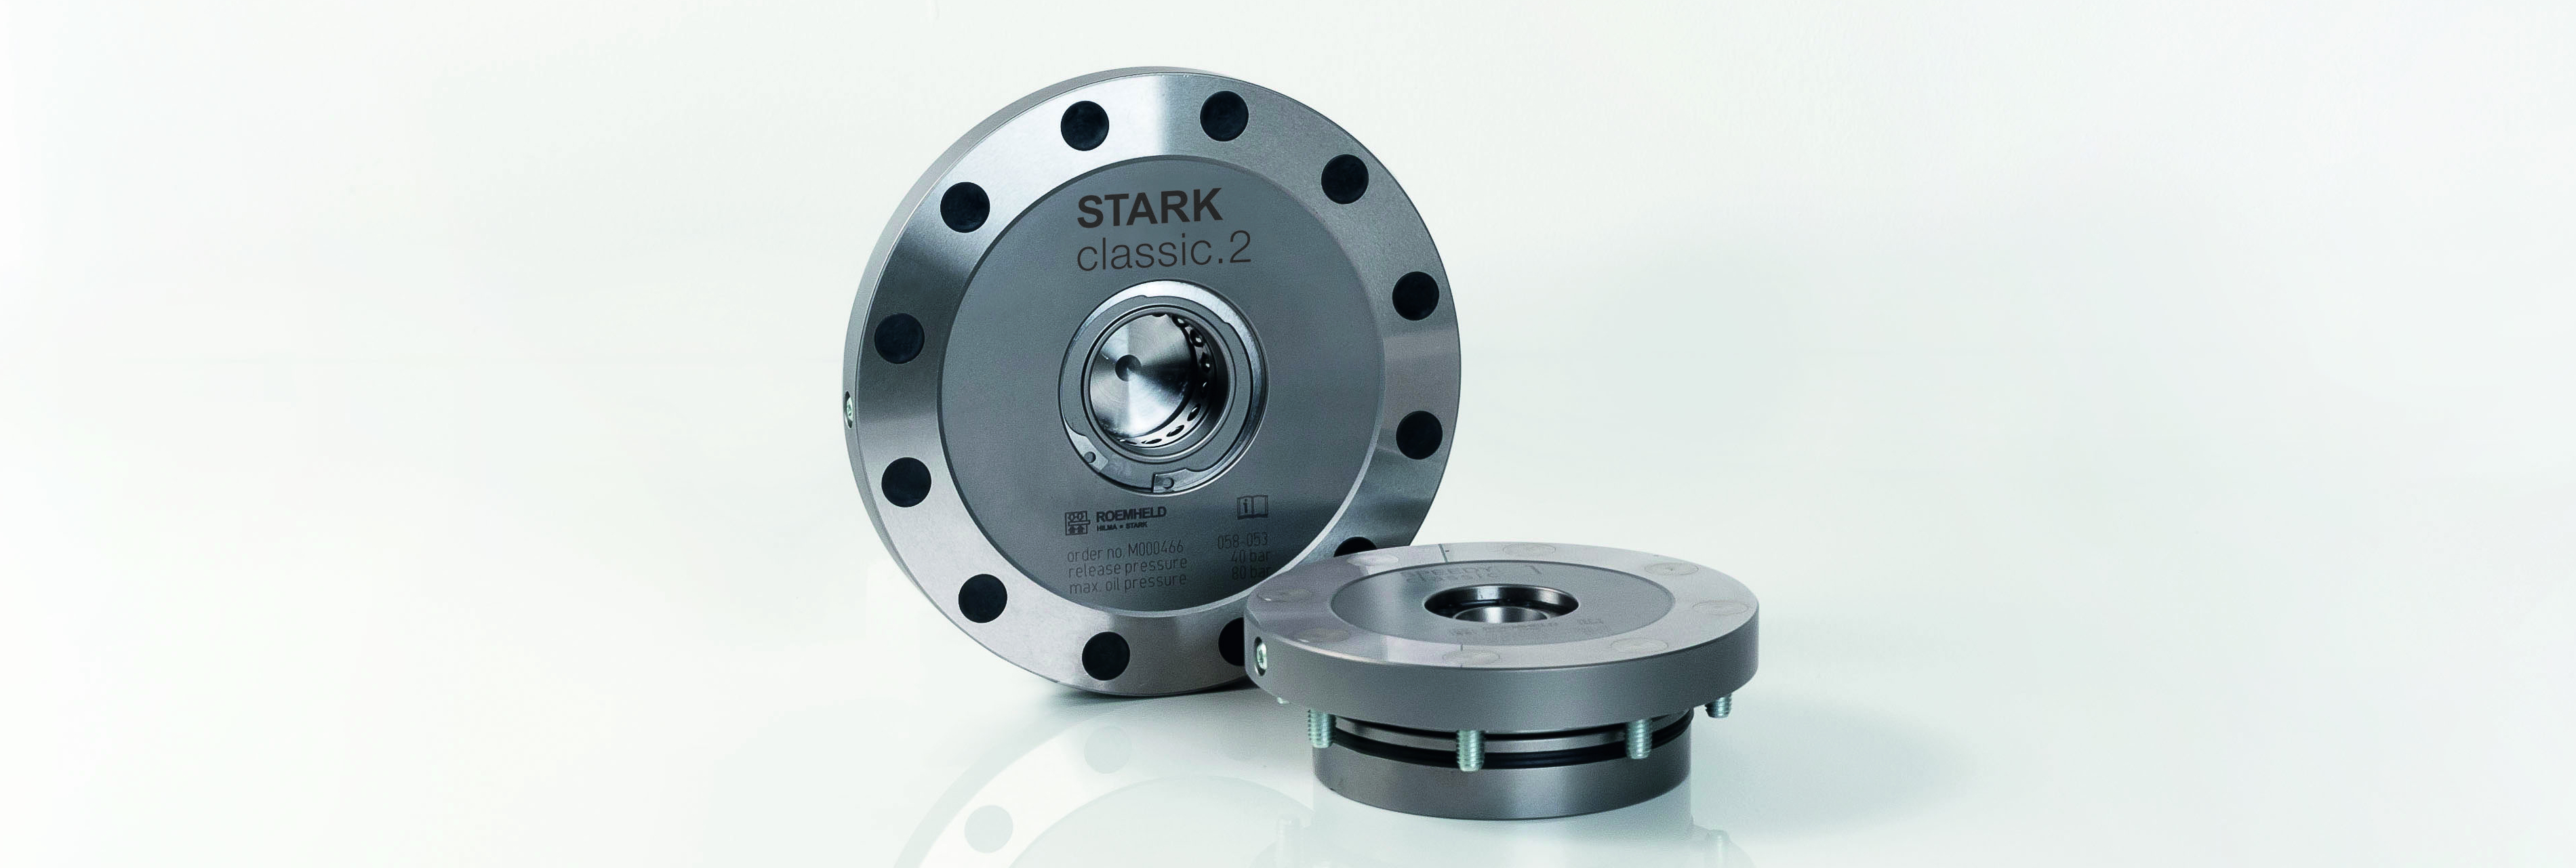 STARK.classic.2 zero point clamping system